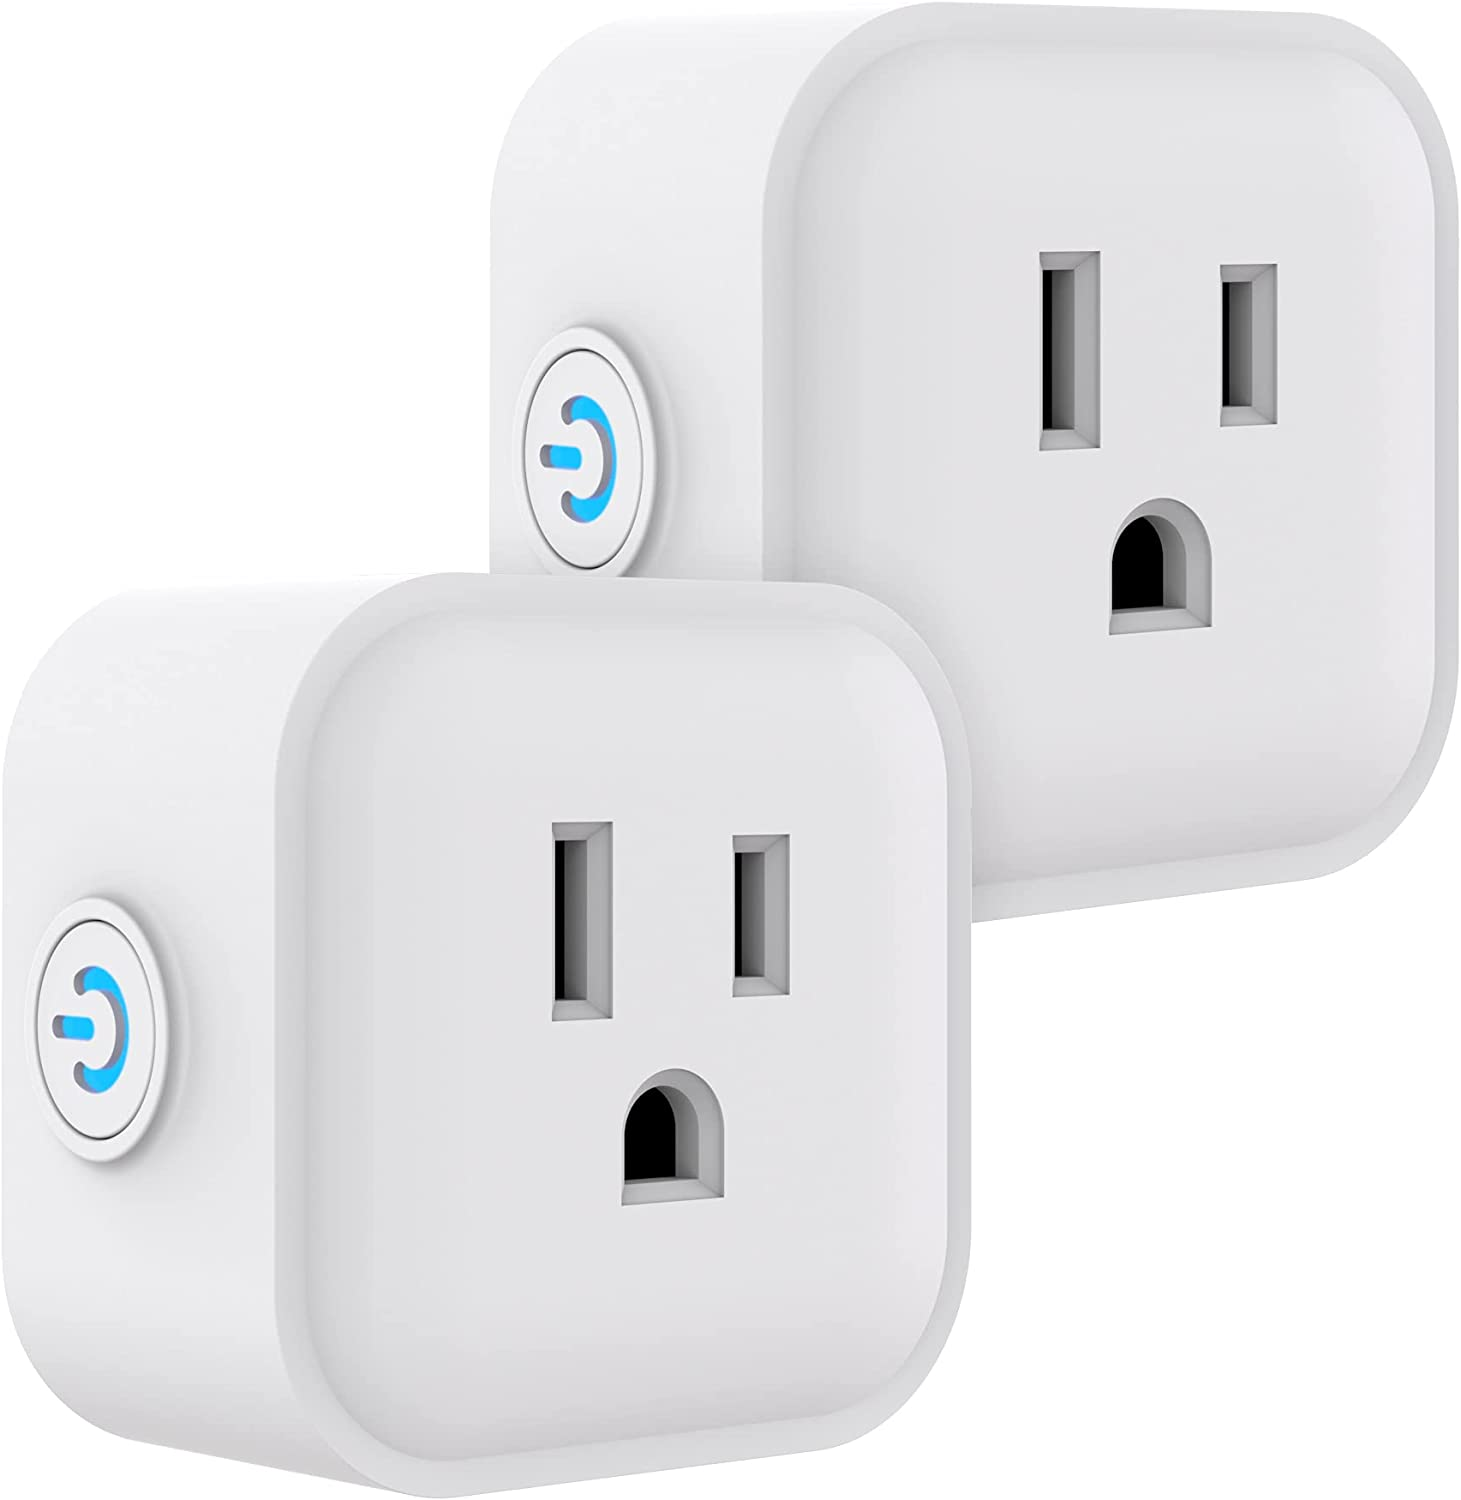 UltraPro Smart Plug WiFi Outlet Works With Alexa, Echo & Google Home, No Hub Required, App Controlled, ETL Certified 2 pack, 51410